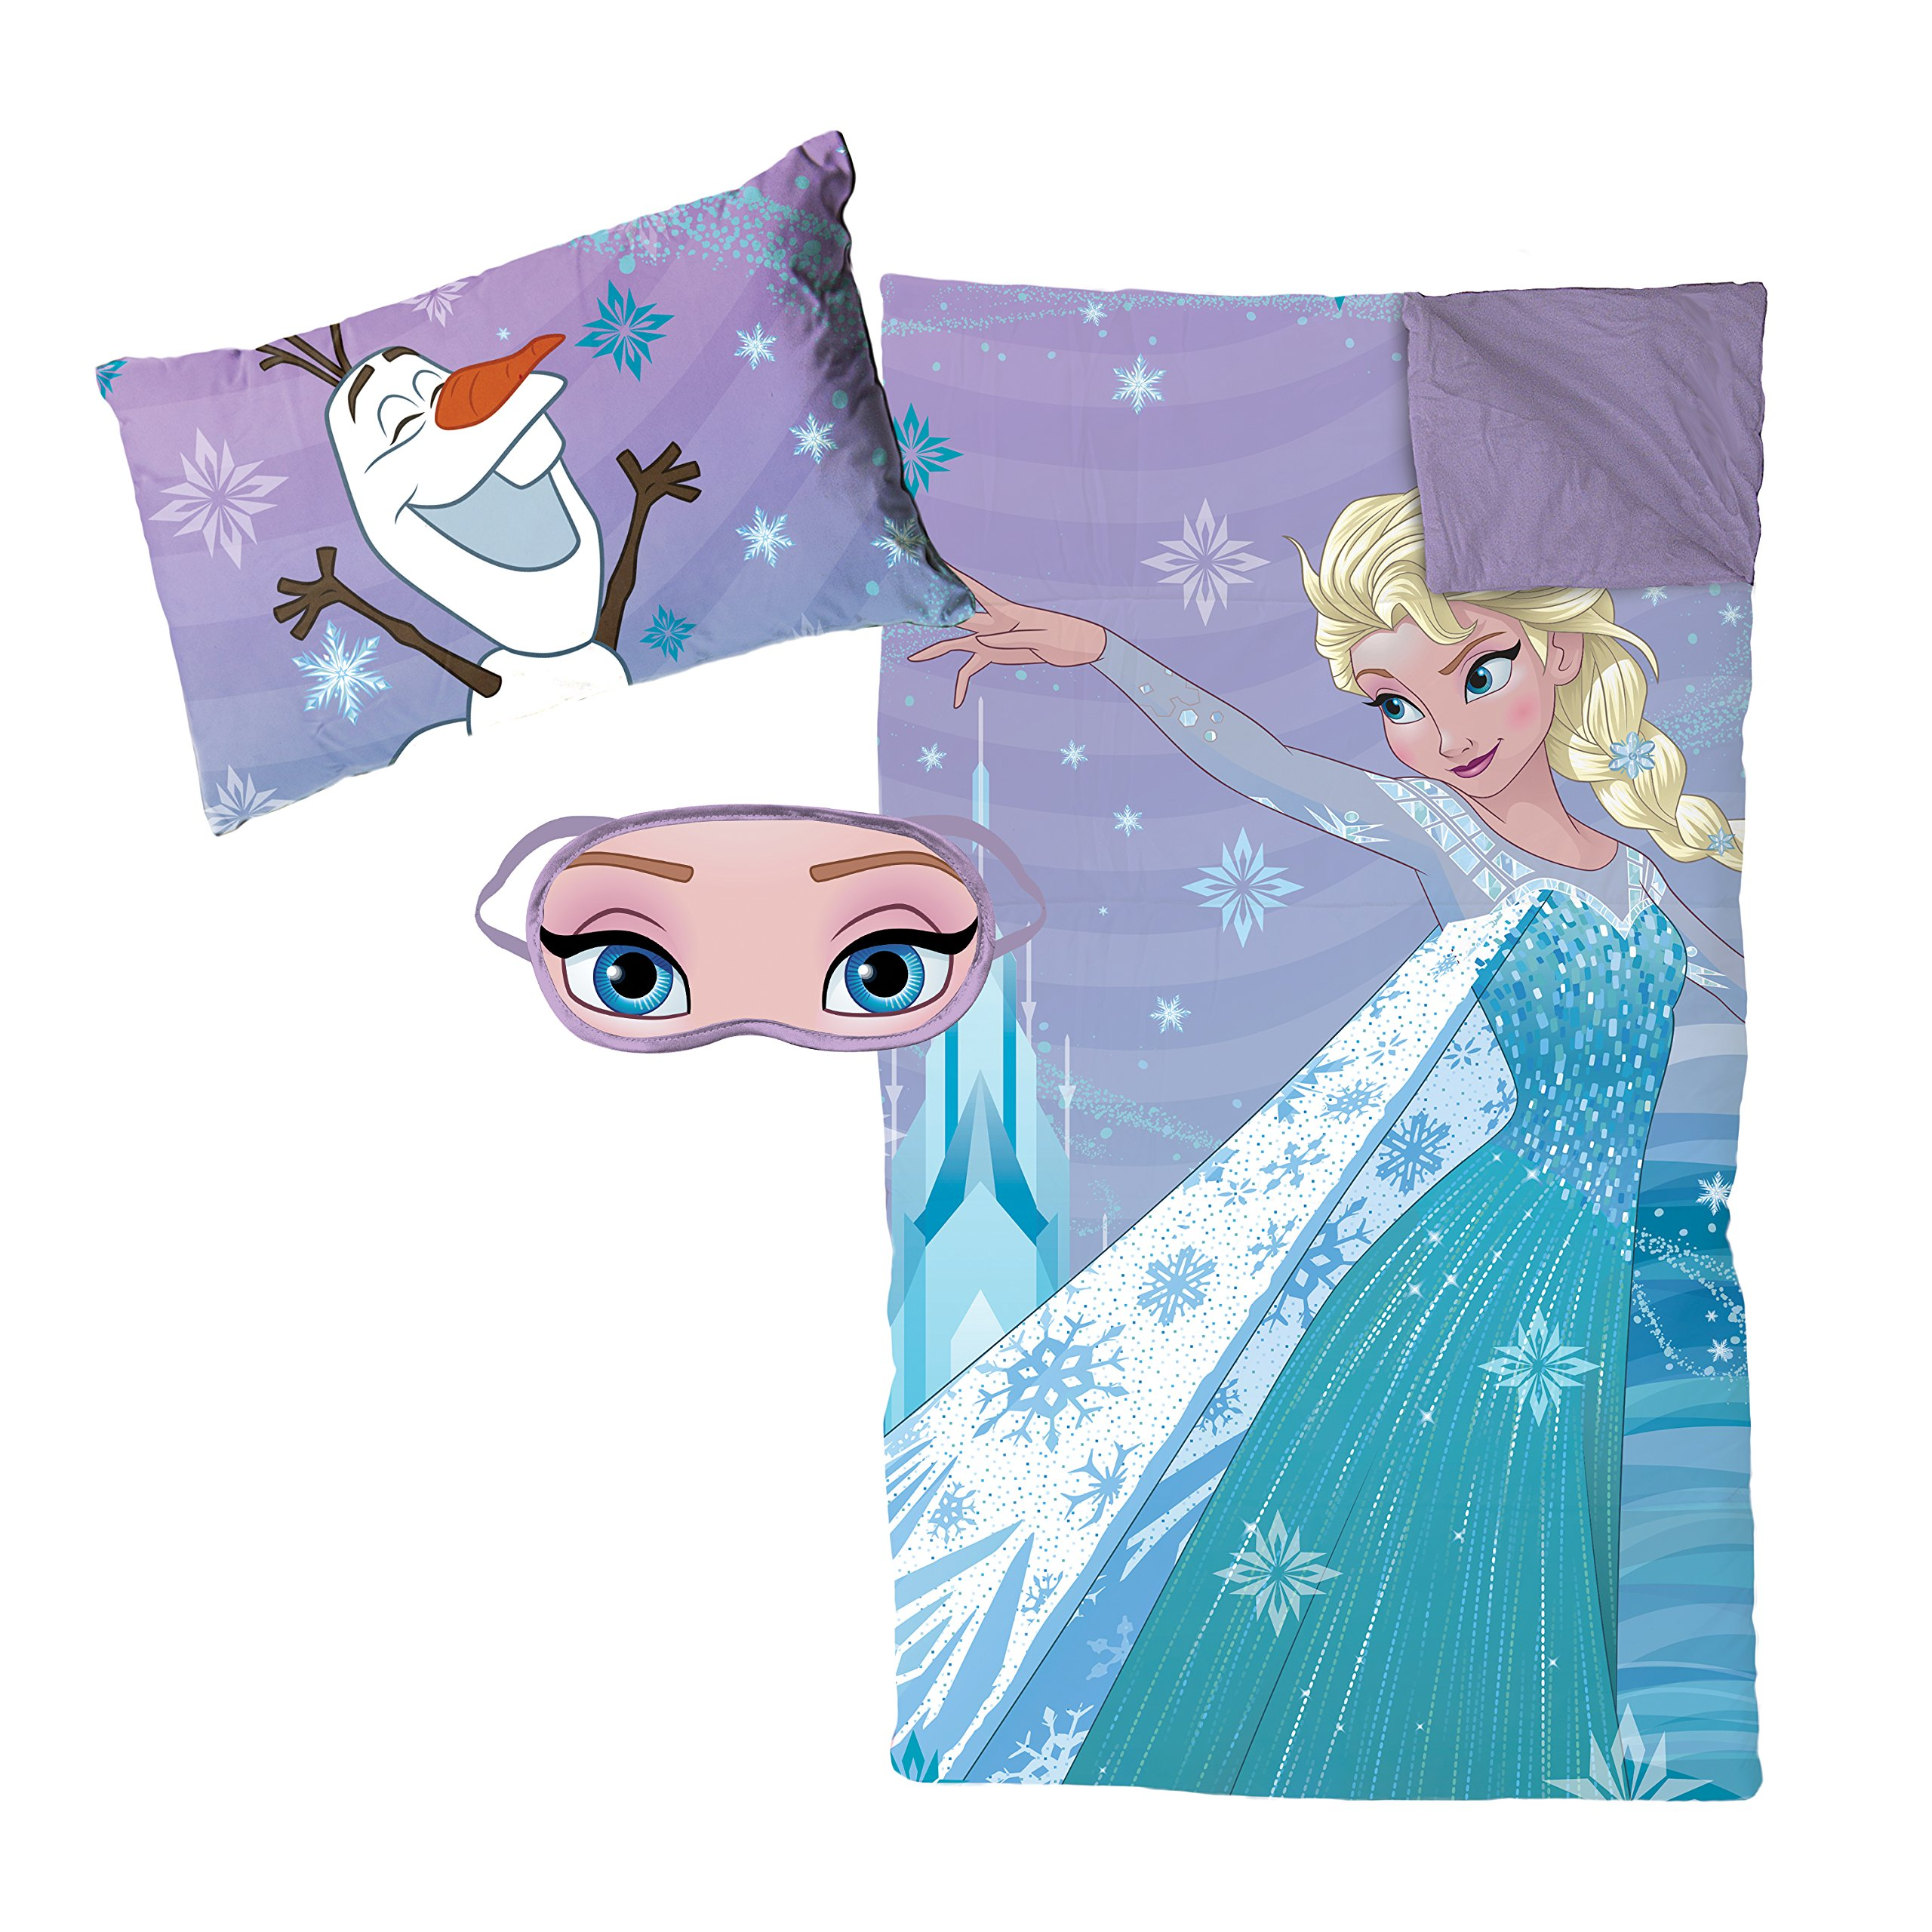 Disney Frozen Let It Go 3 Piece Plush Sleepover Set